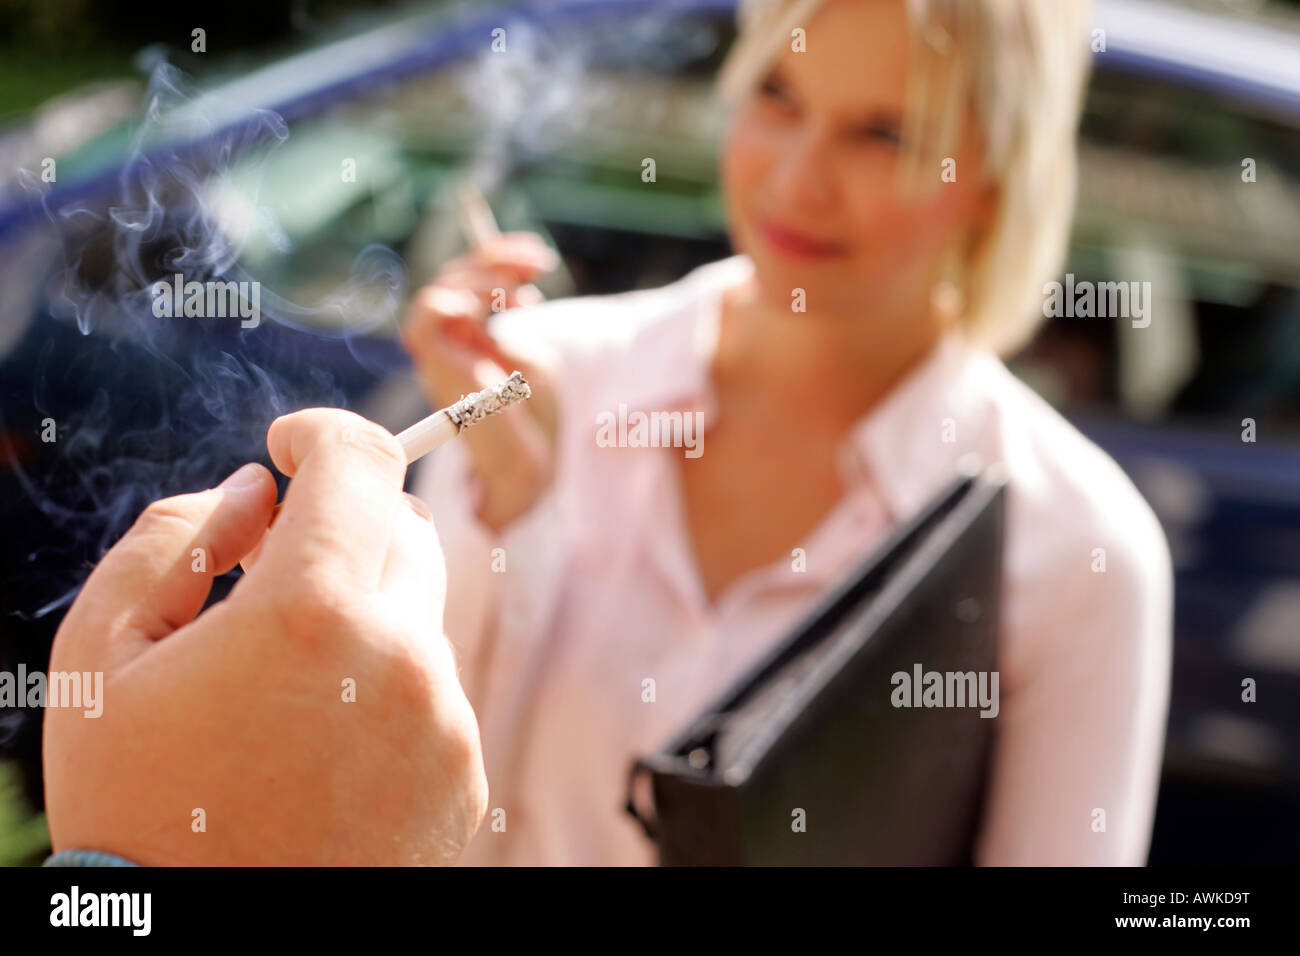 people smoking outside their office - Stock Image